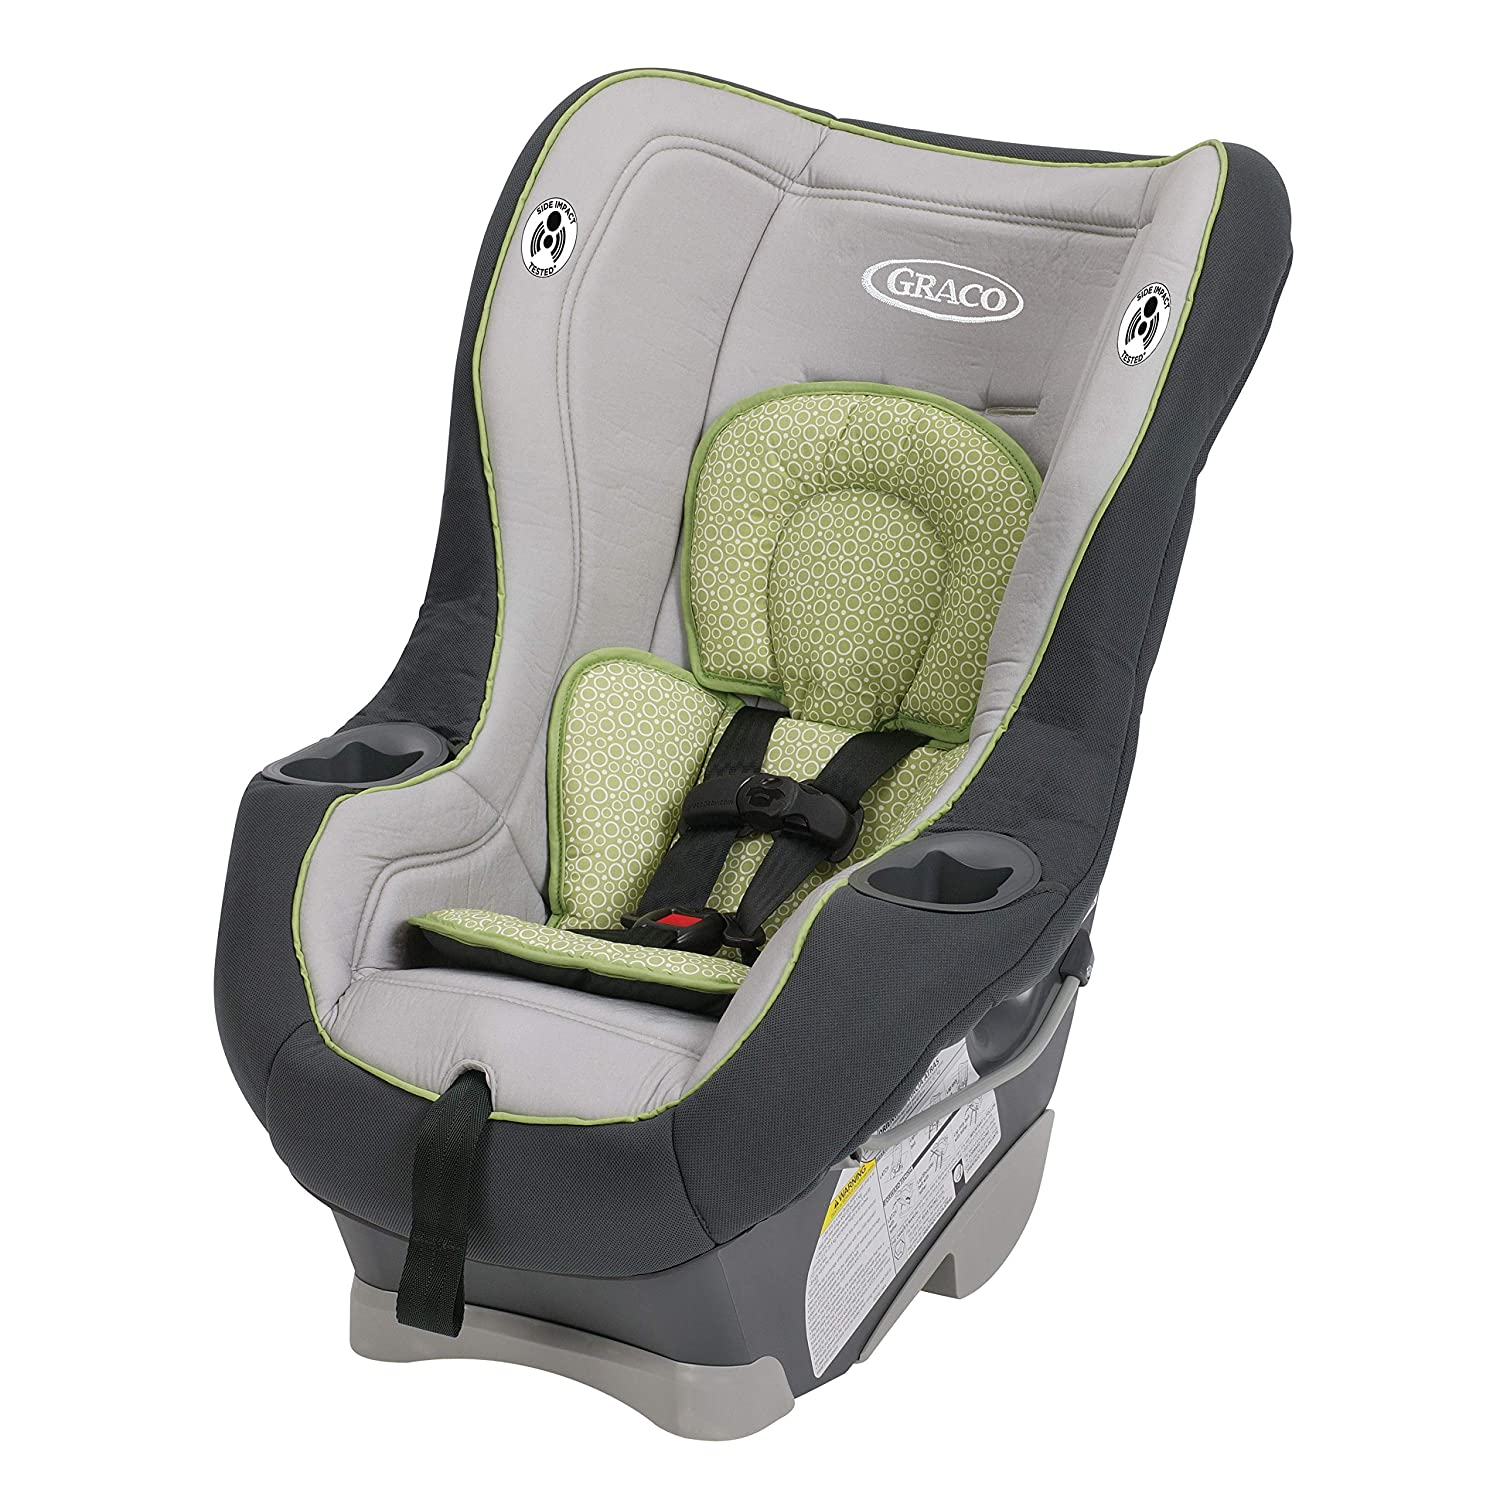 Top 5 Best Affordable Convertible Car Seats Reviews in 2020 2